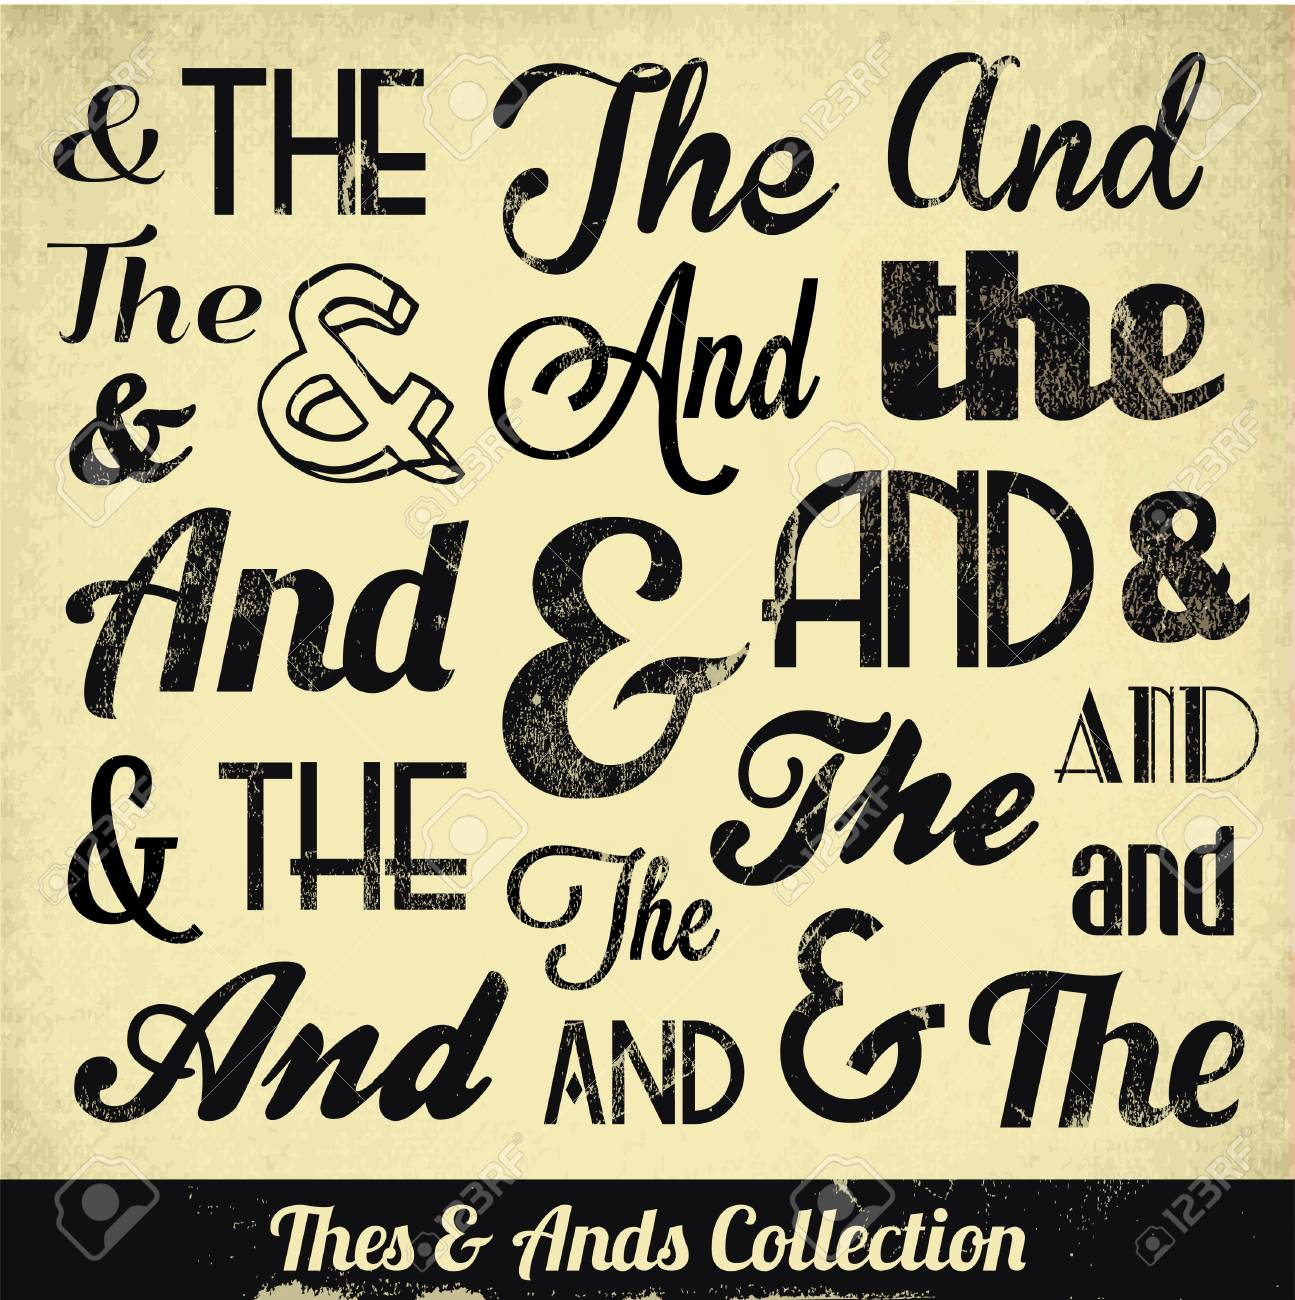 Various Vintage Thes   Ends Collection  For High Quality Graphic Projects Stock Vector - 23763847